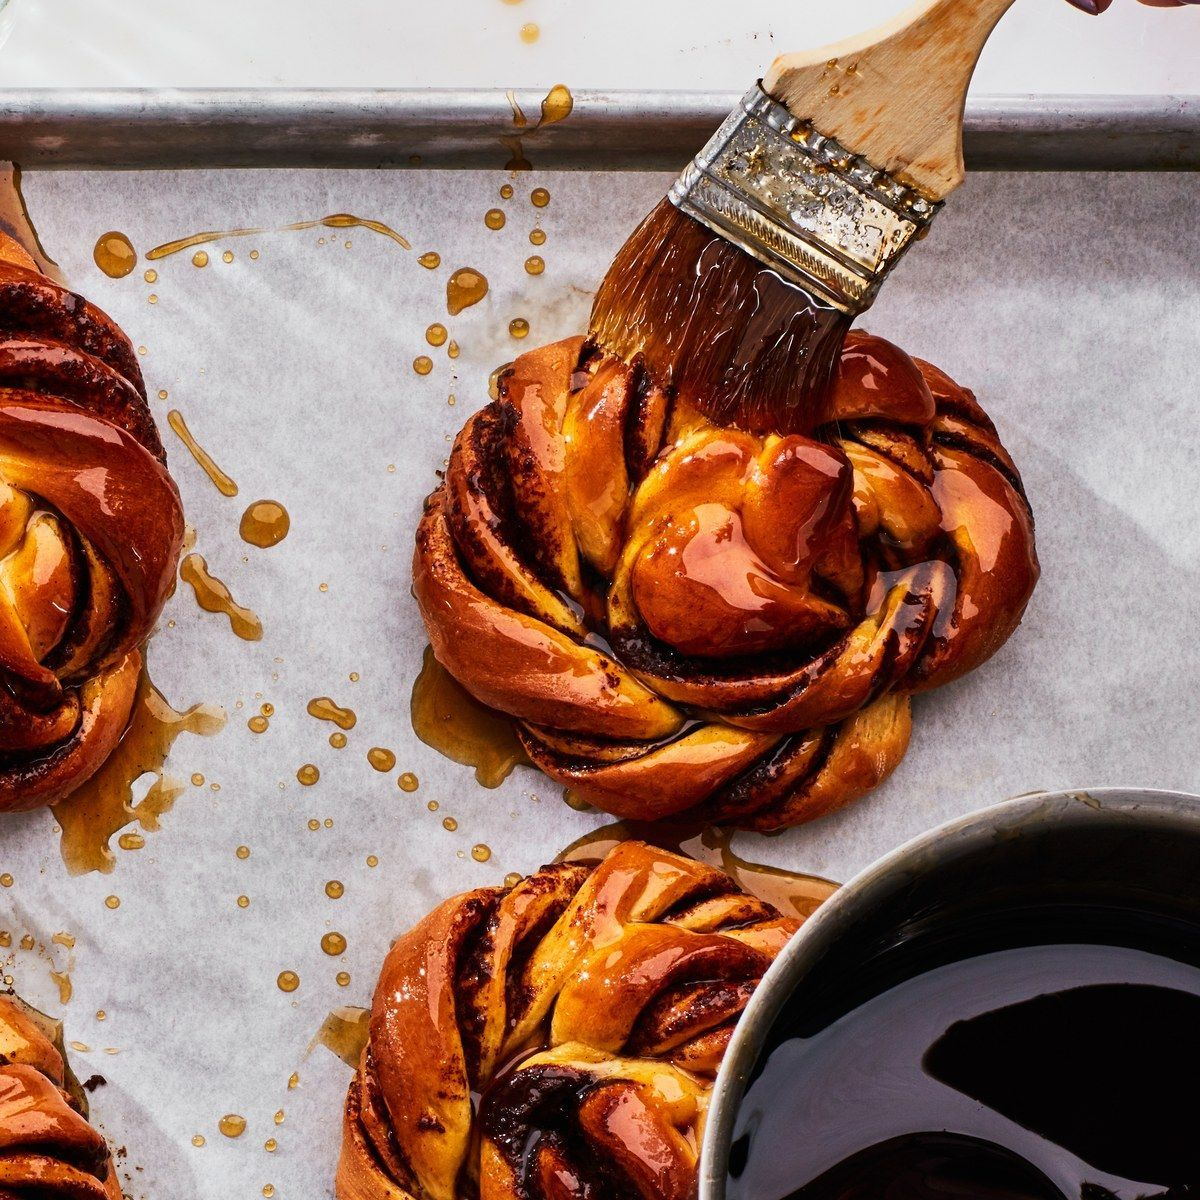 How to Make and Shape Our Glazed Cinnamon-Cardamom Buns #cardamombuns How to Make and Shape The Glazed Cinnamon-Cardamom Buns from Paris's Circus Bakery - Epicurious #cardamombuns